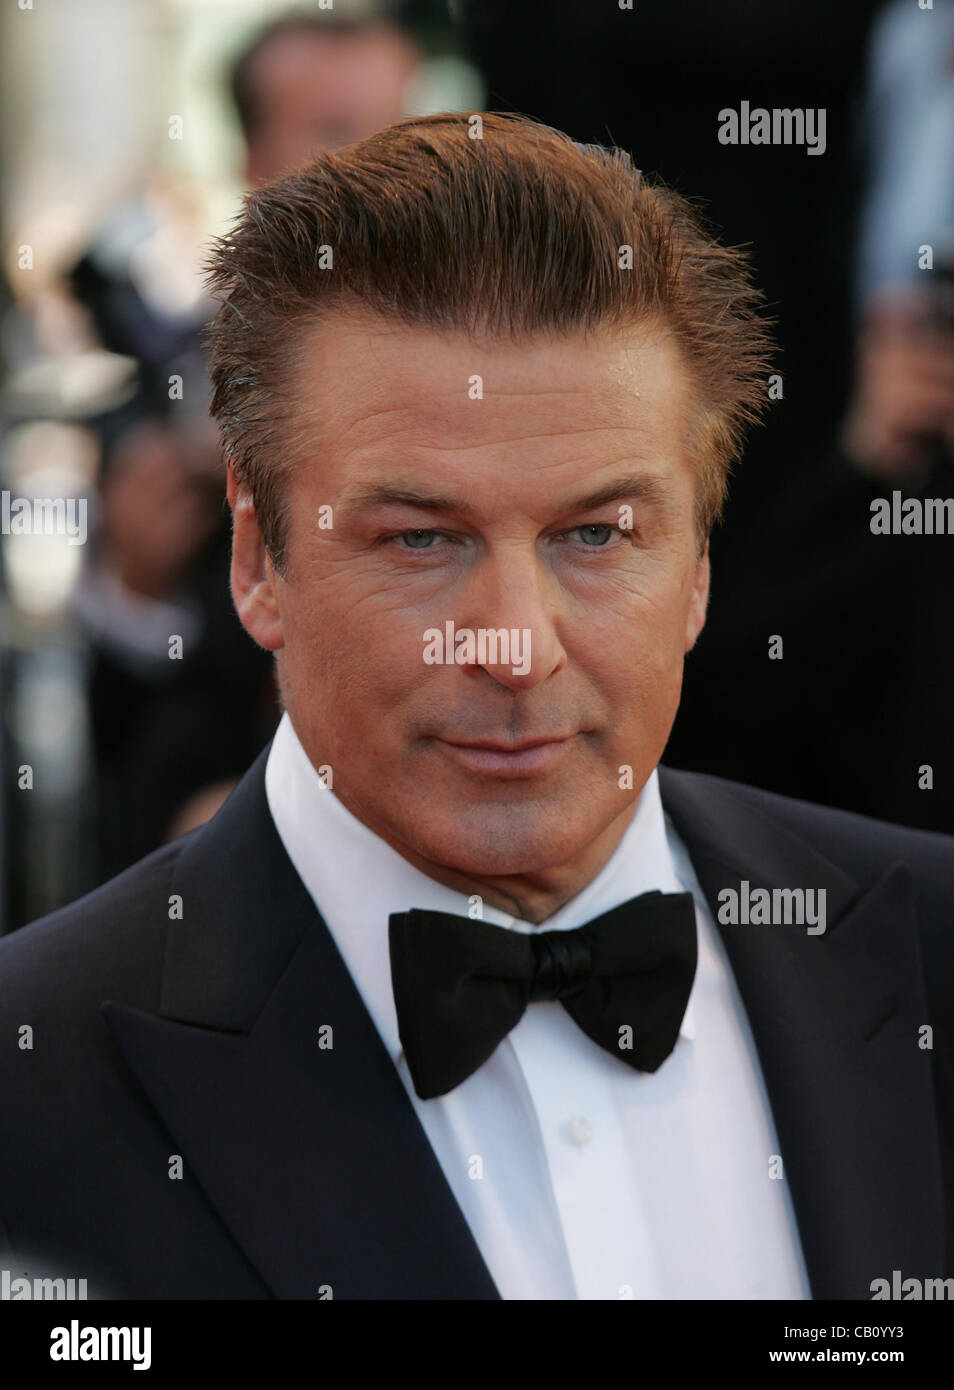 Cannes, France, 16/05/2012:Alec Baldwin arrives for the Moonrise Kingdom premiere during the 65th Annual Cannes - Stock Image